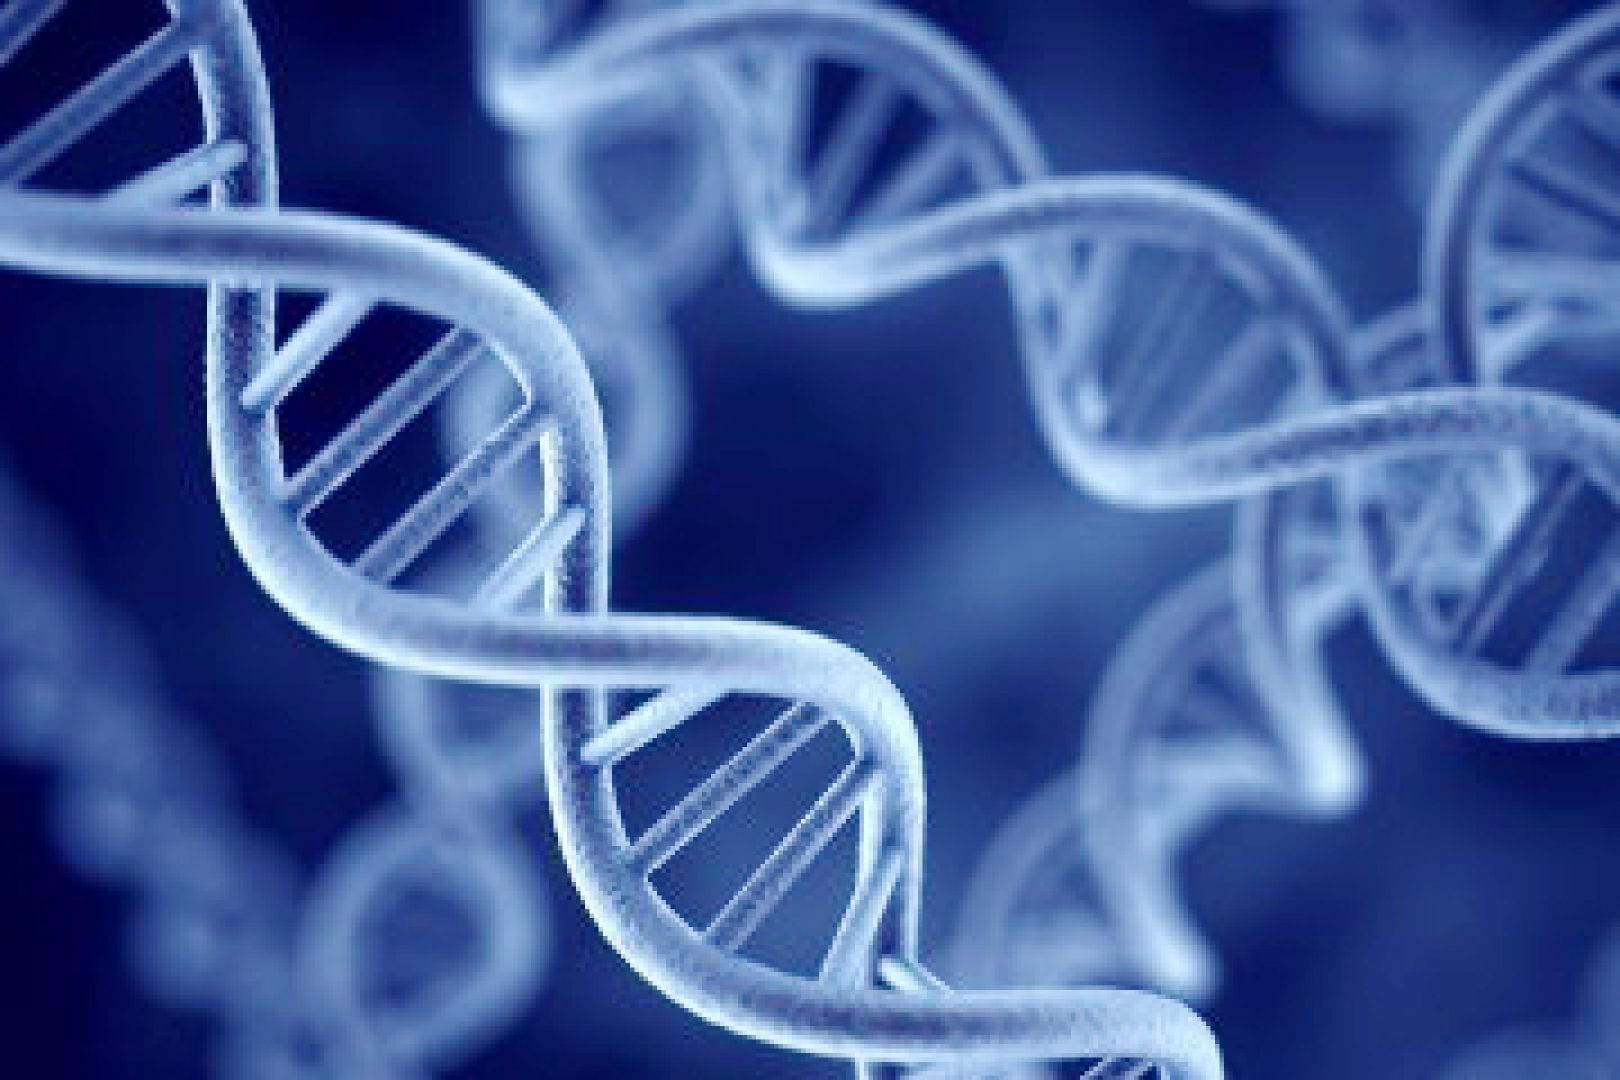 Cloning of humans might someday be possible